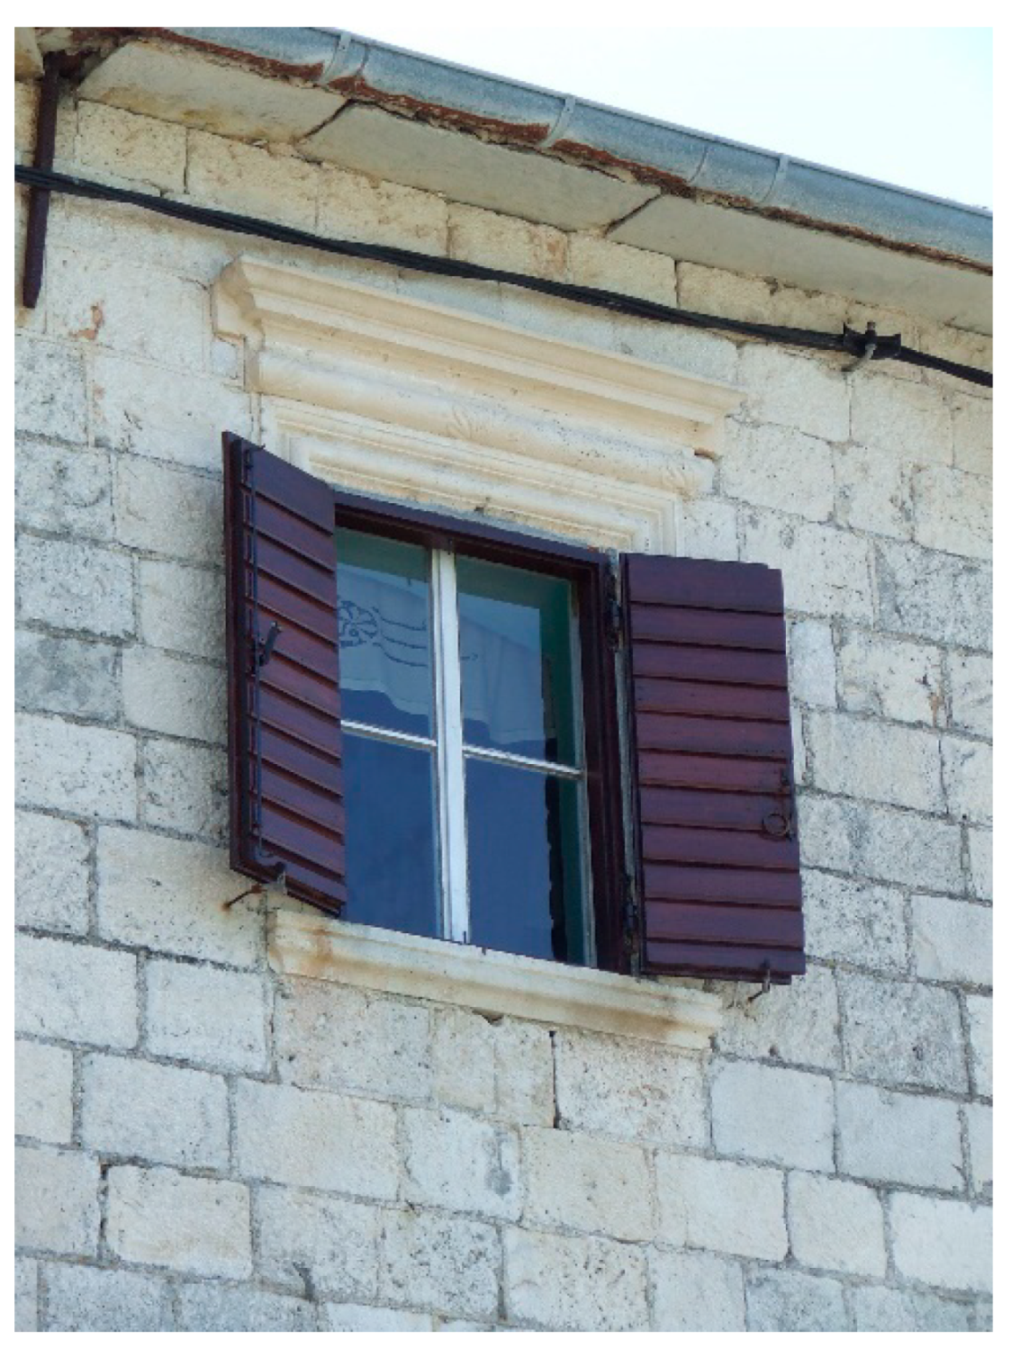 decorative windows for houses.htm sustainability free full text houses based on natural stone  a  houses based on natural stone